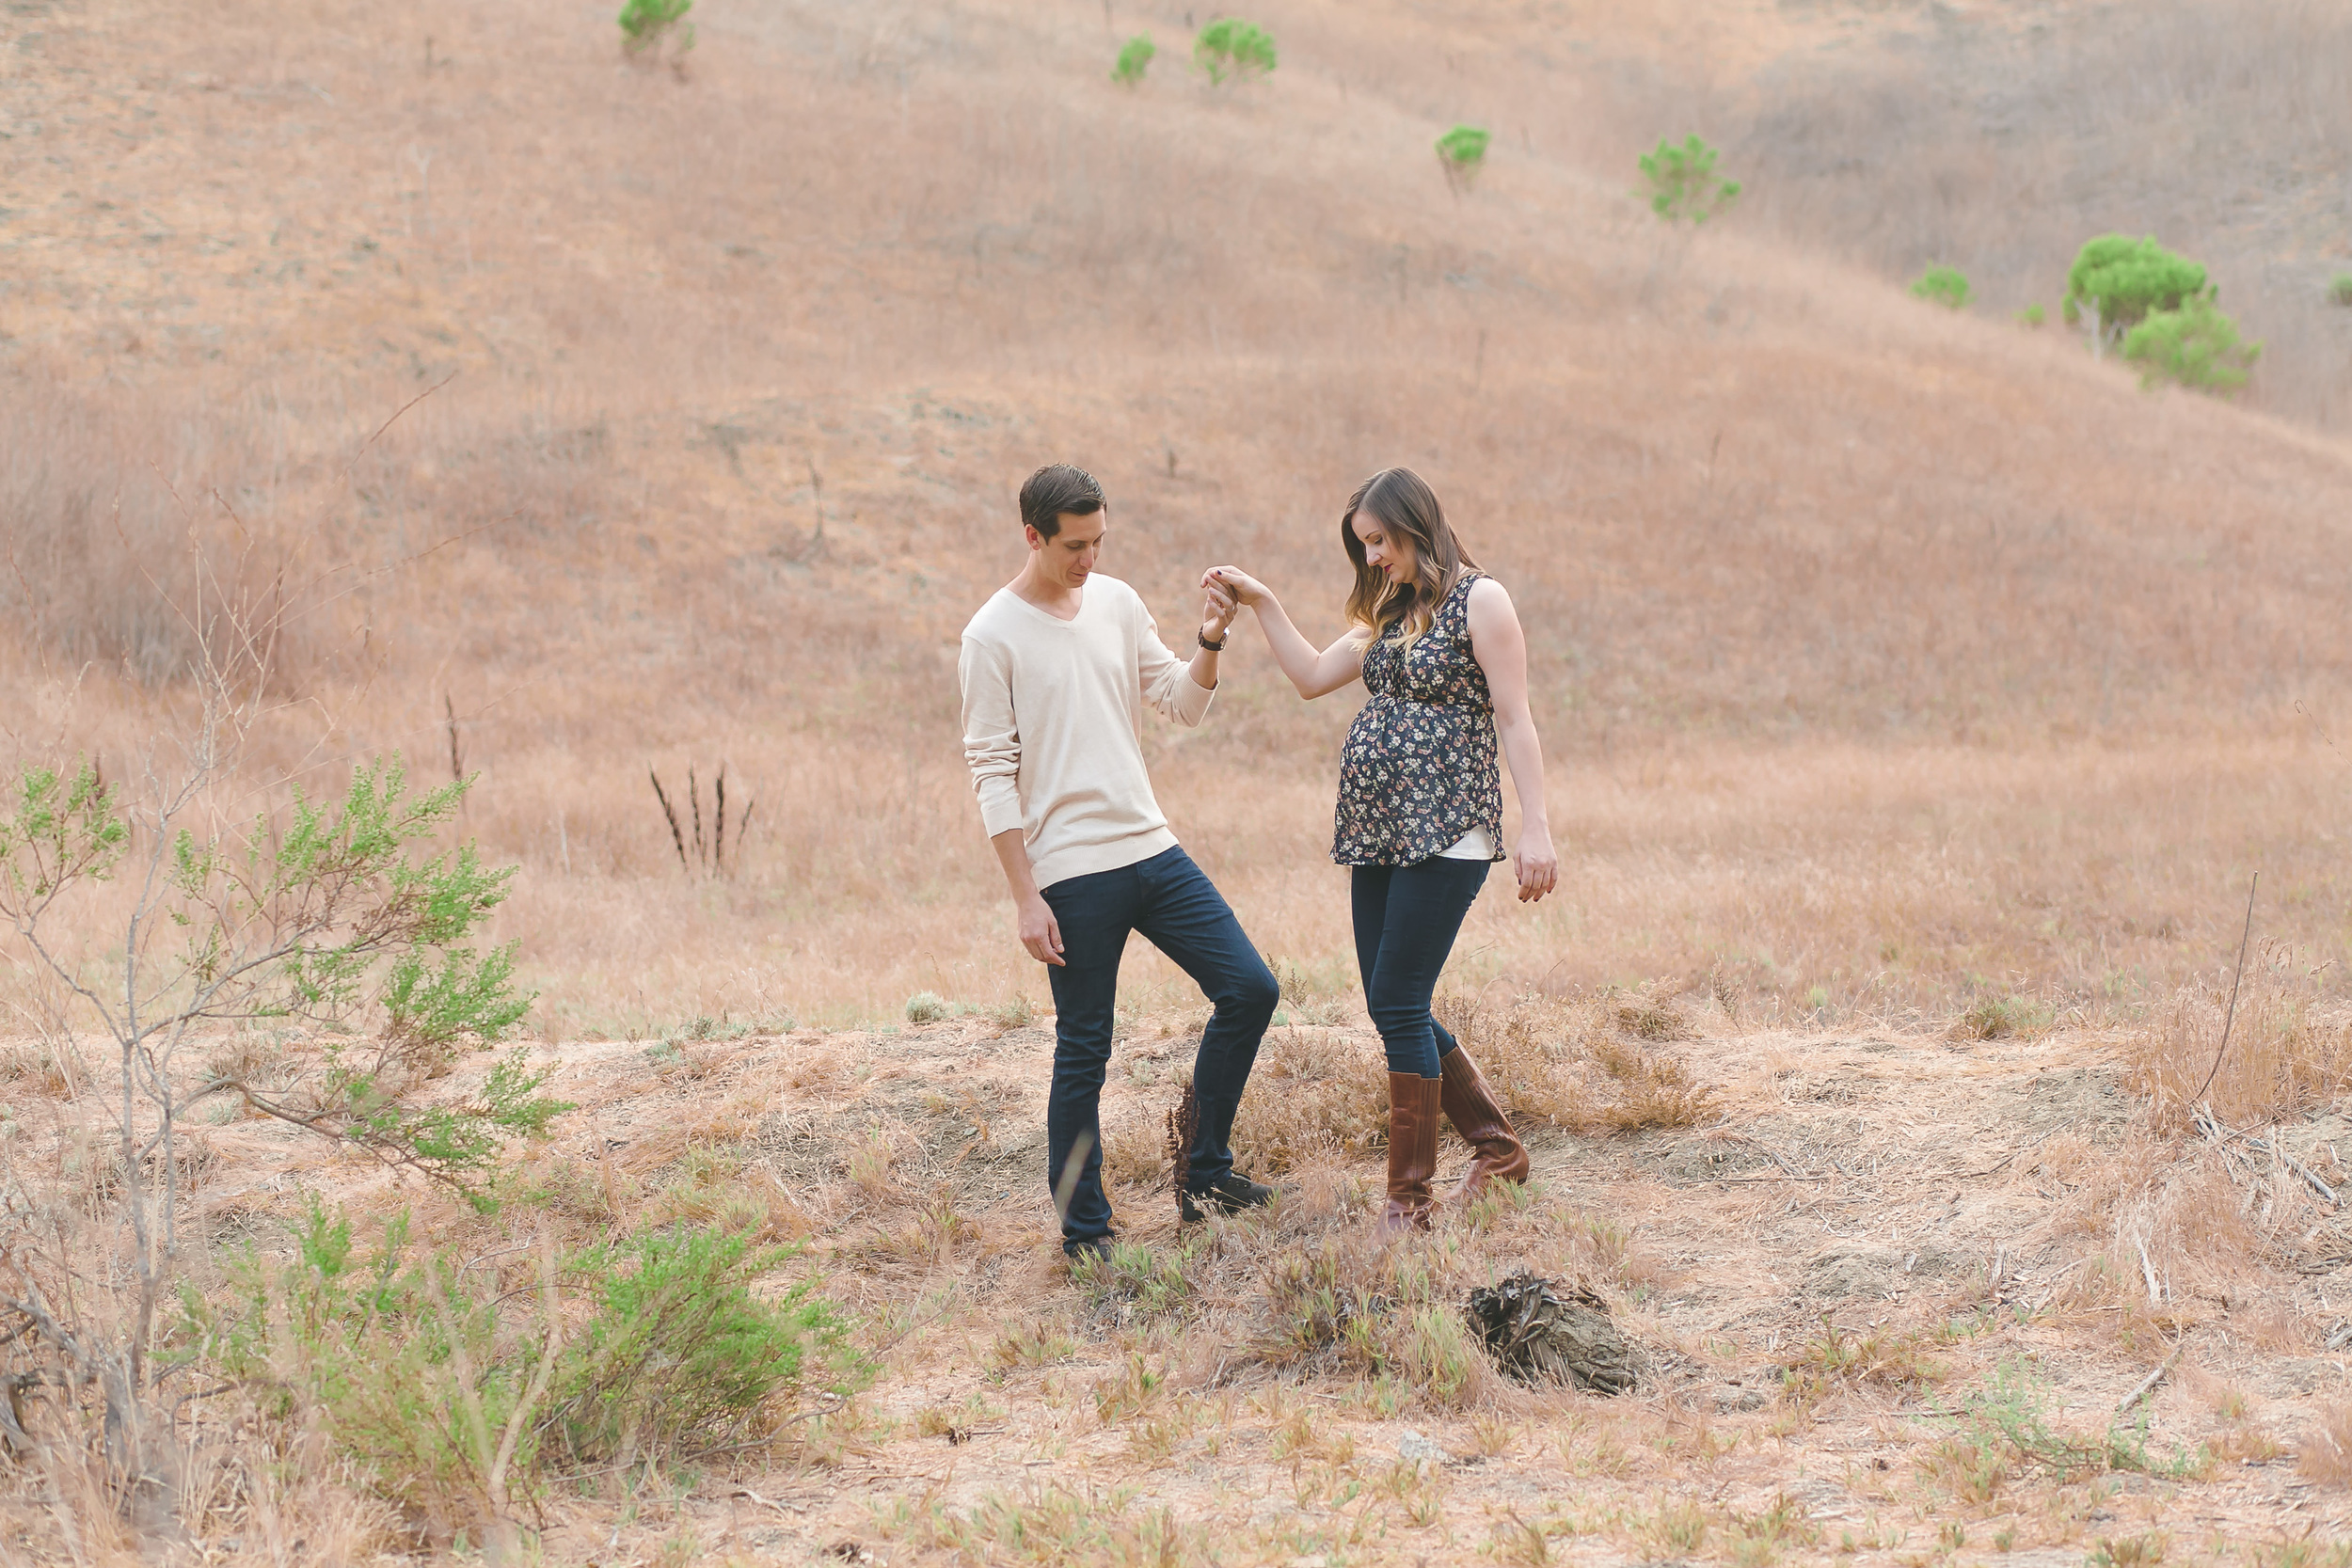 Orange County Maternity Photos, OC baby bump pictures, Expecting Baby Milo, New Parents-to-be, Outdoor Lifestyle Pregnancy Photographer, Los Angeles Maternity Pictures, Gina Holt Photography, San Diego Photographers